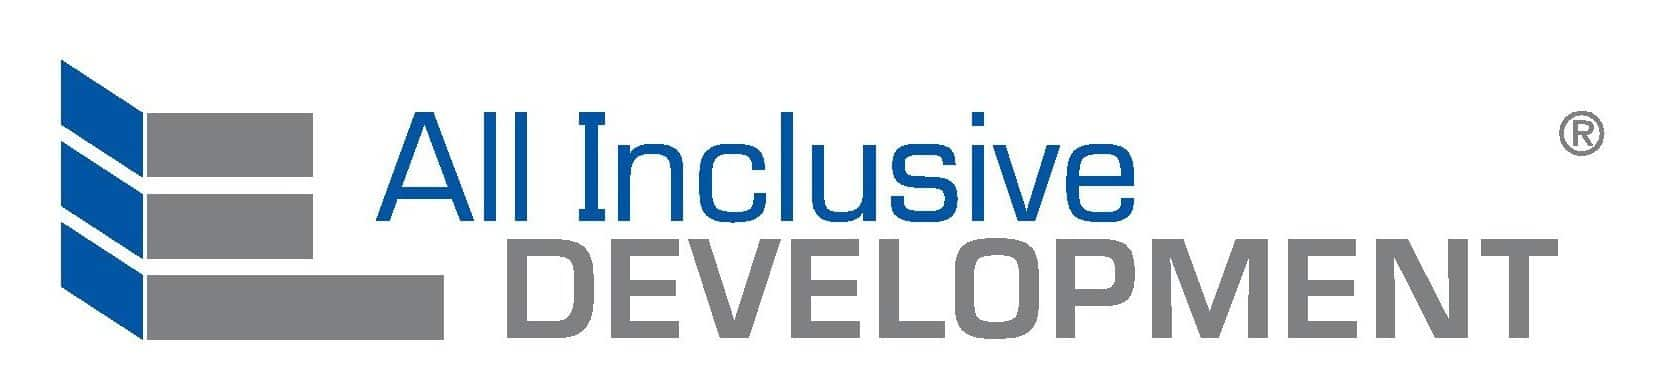 All Inclusive Development